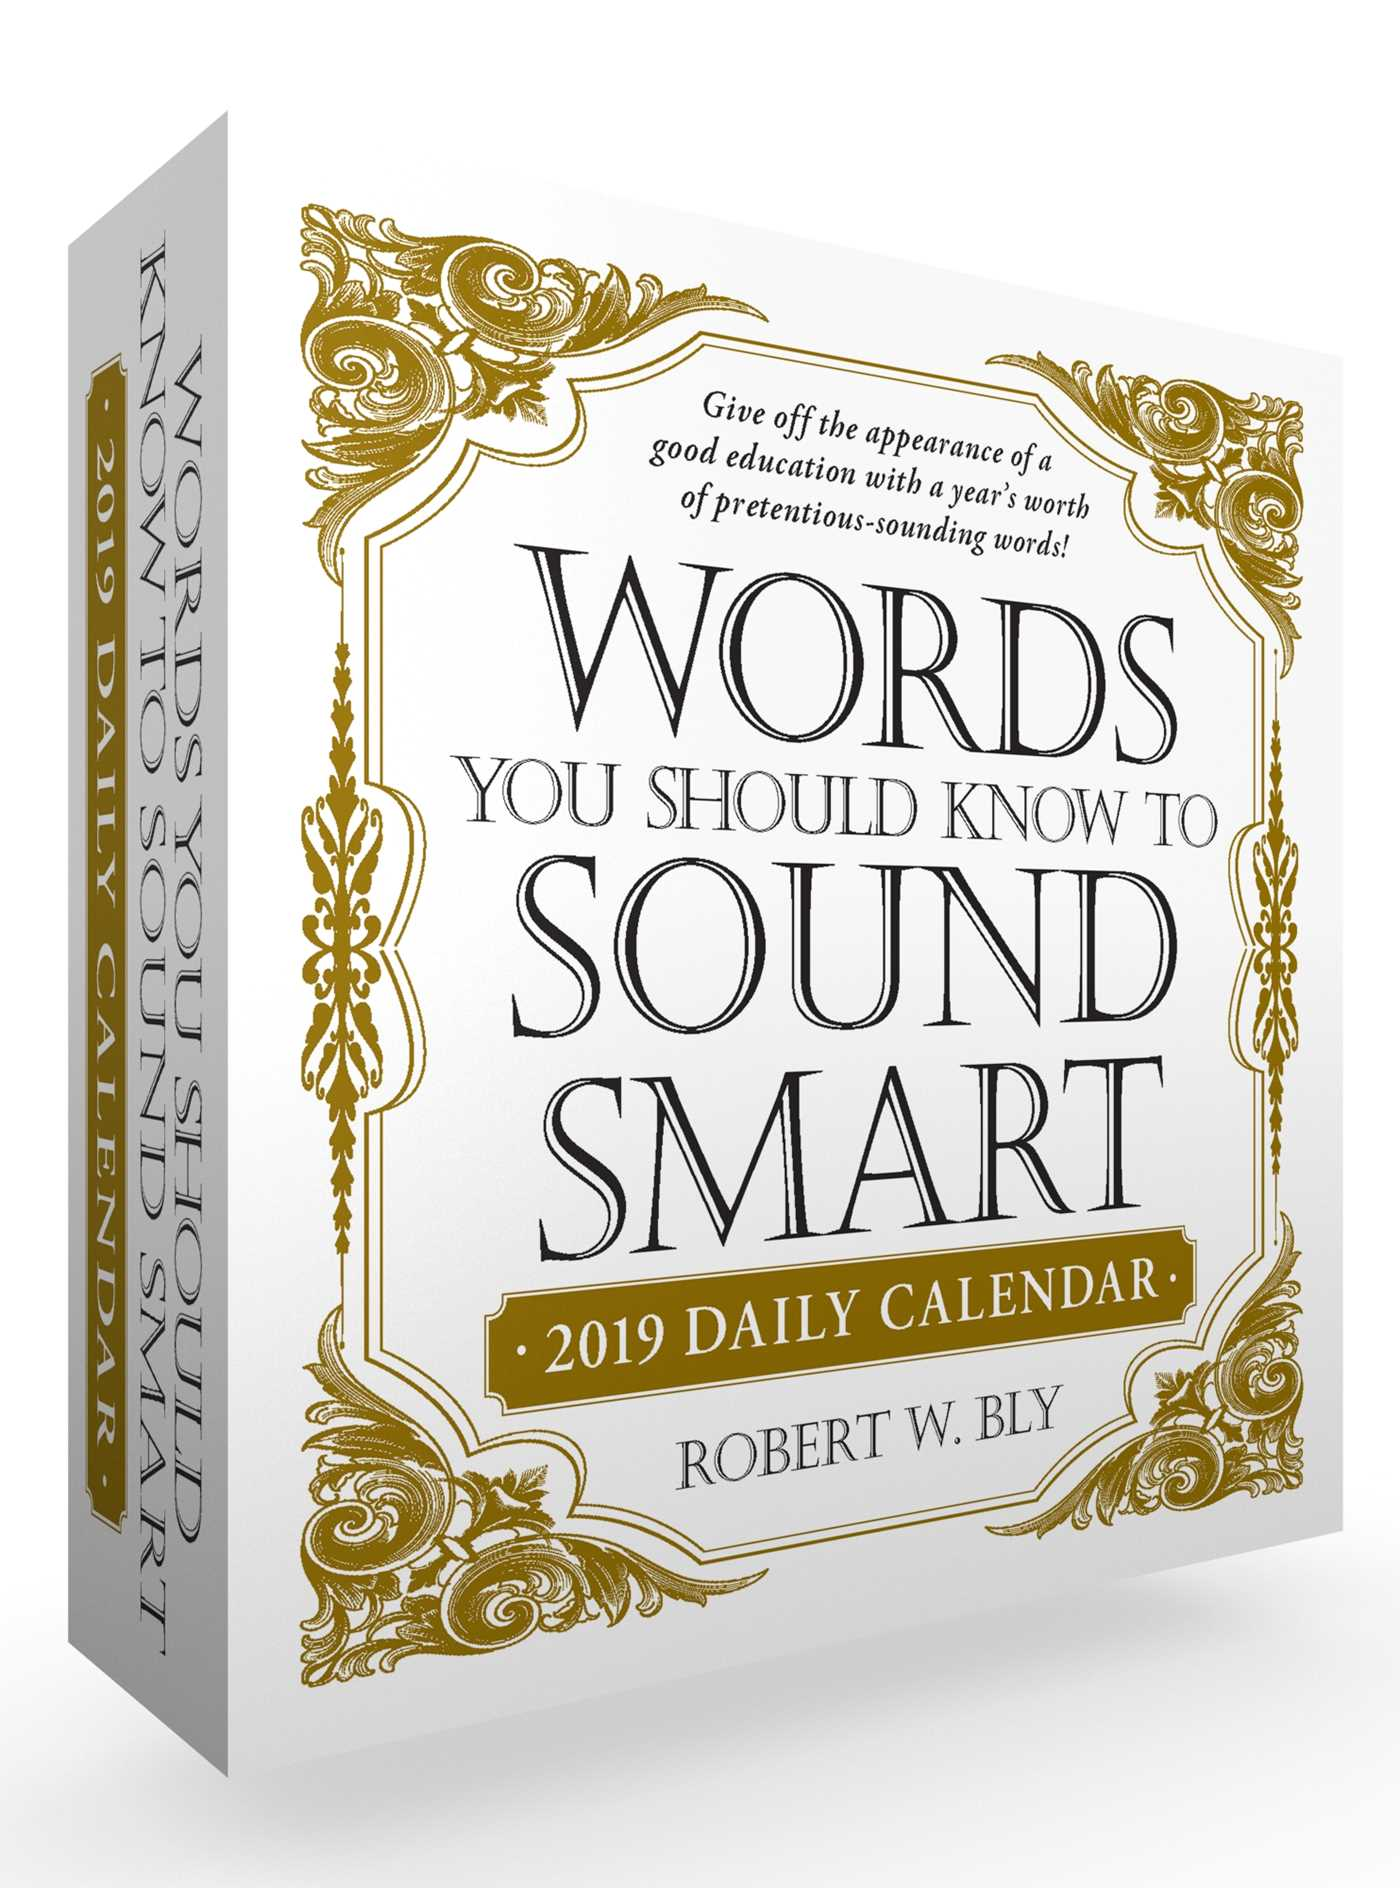 Words you should know to sound smart 2019 daily calendar 9781507207741 hr